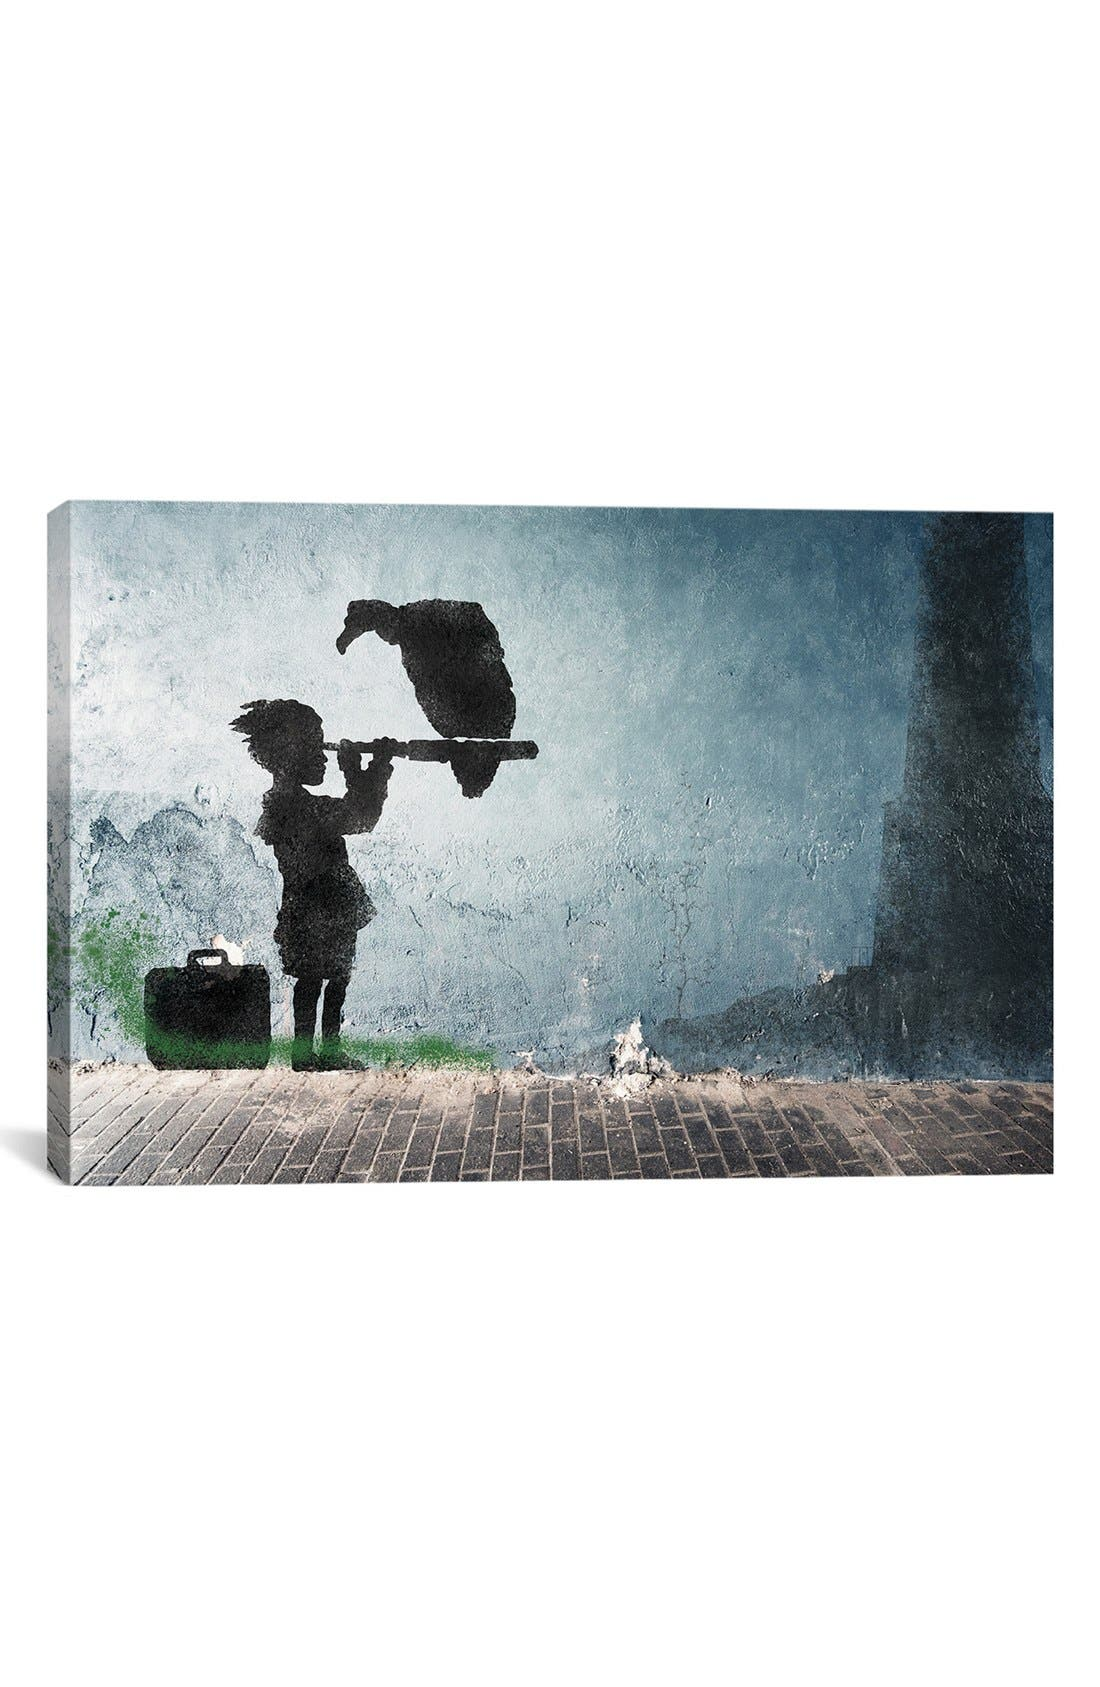 'Boy & His Vulture' Giclée Print Canvas Art,                             Main thumbnail 1, color,                             020